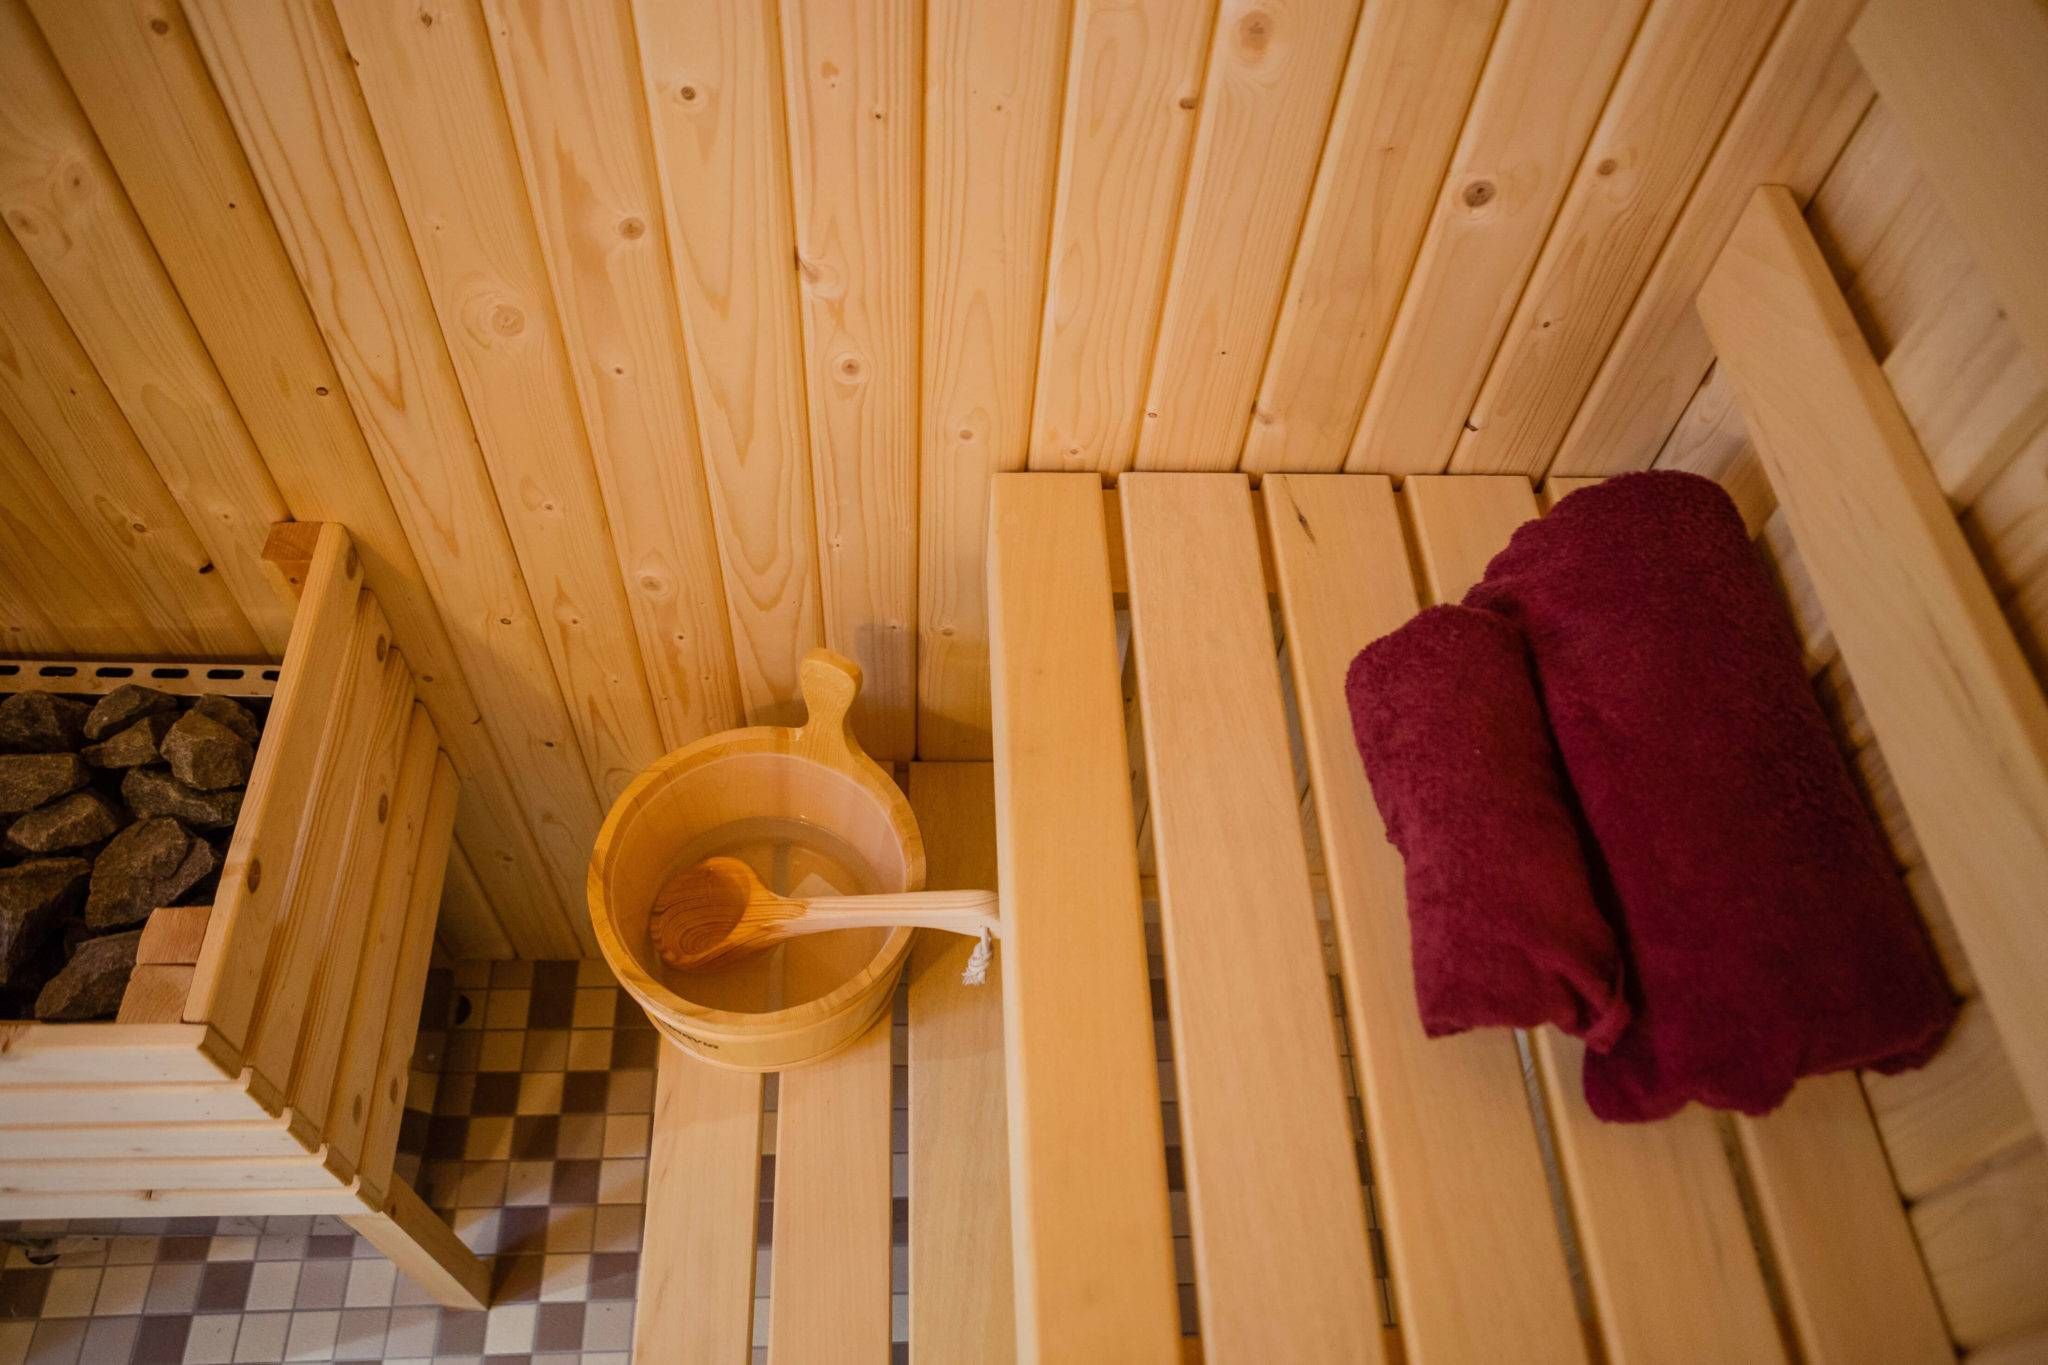 http://silverbay.co.uk/wp-content/uploads/2016/12/Silver-Bay-Spa-and-Leisure-Complex-Sauna-Room-1-1.jpg